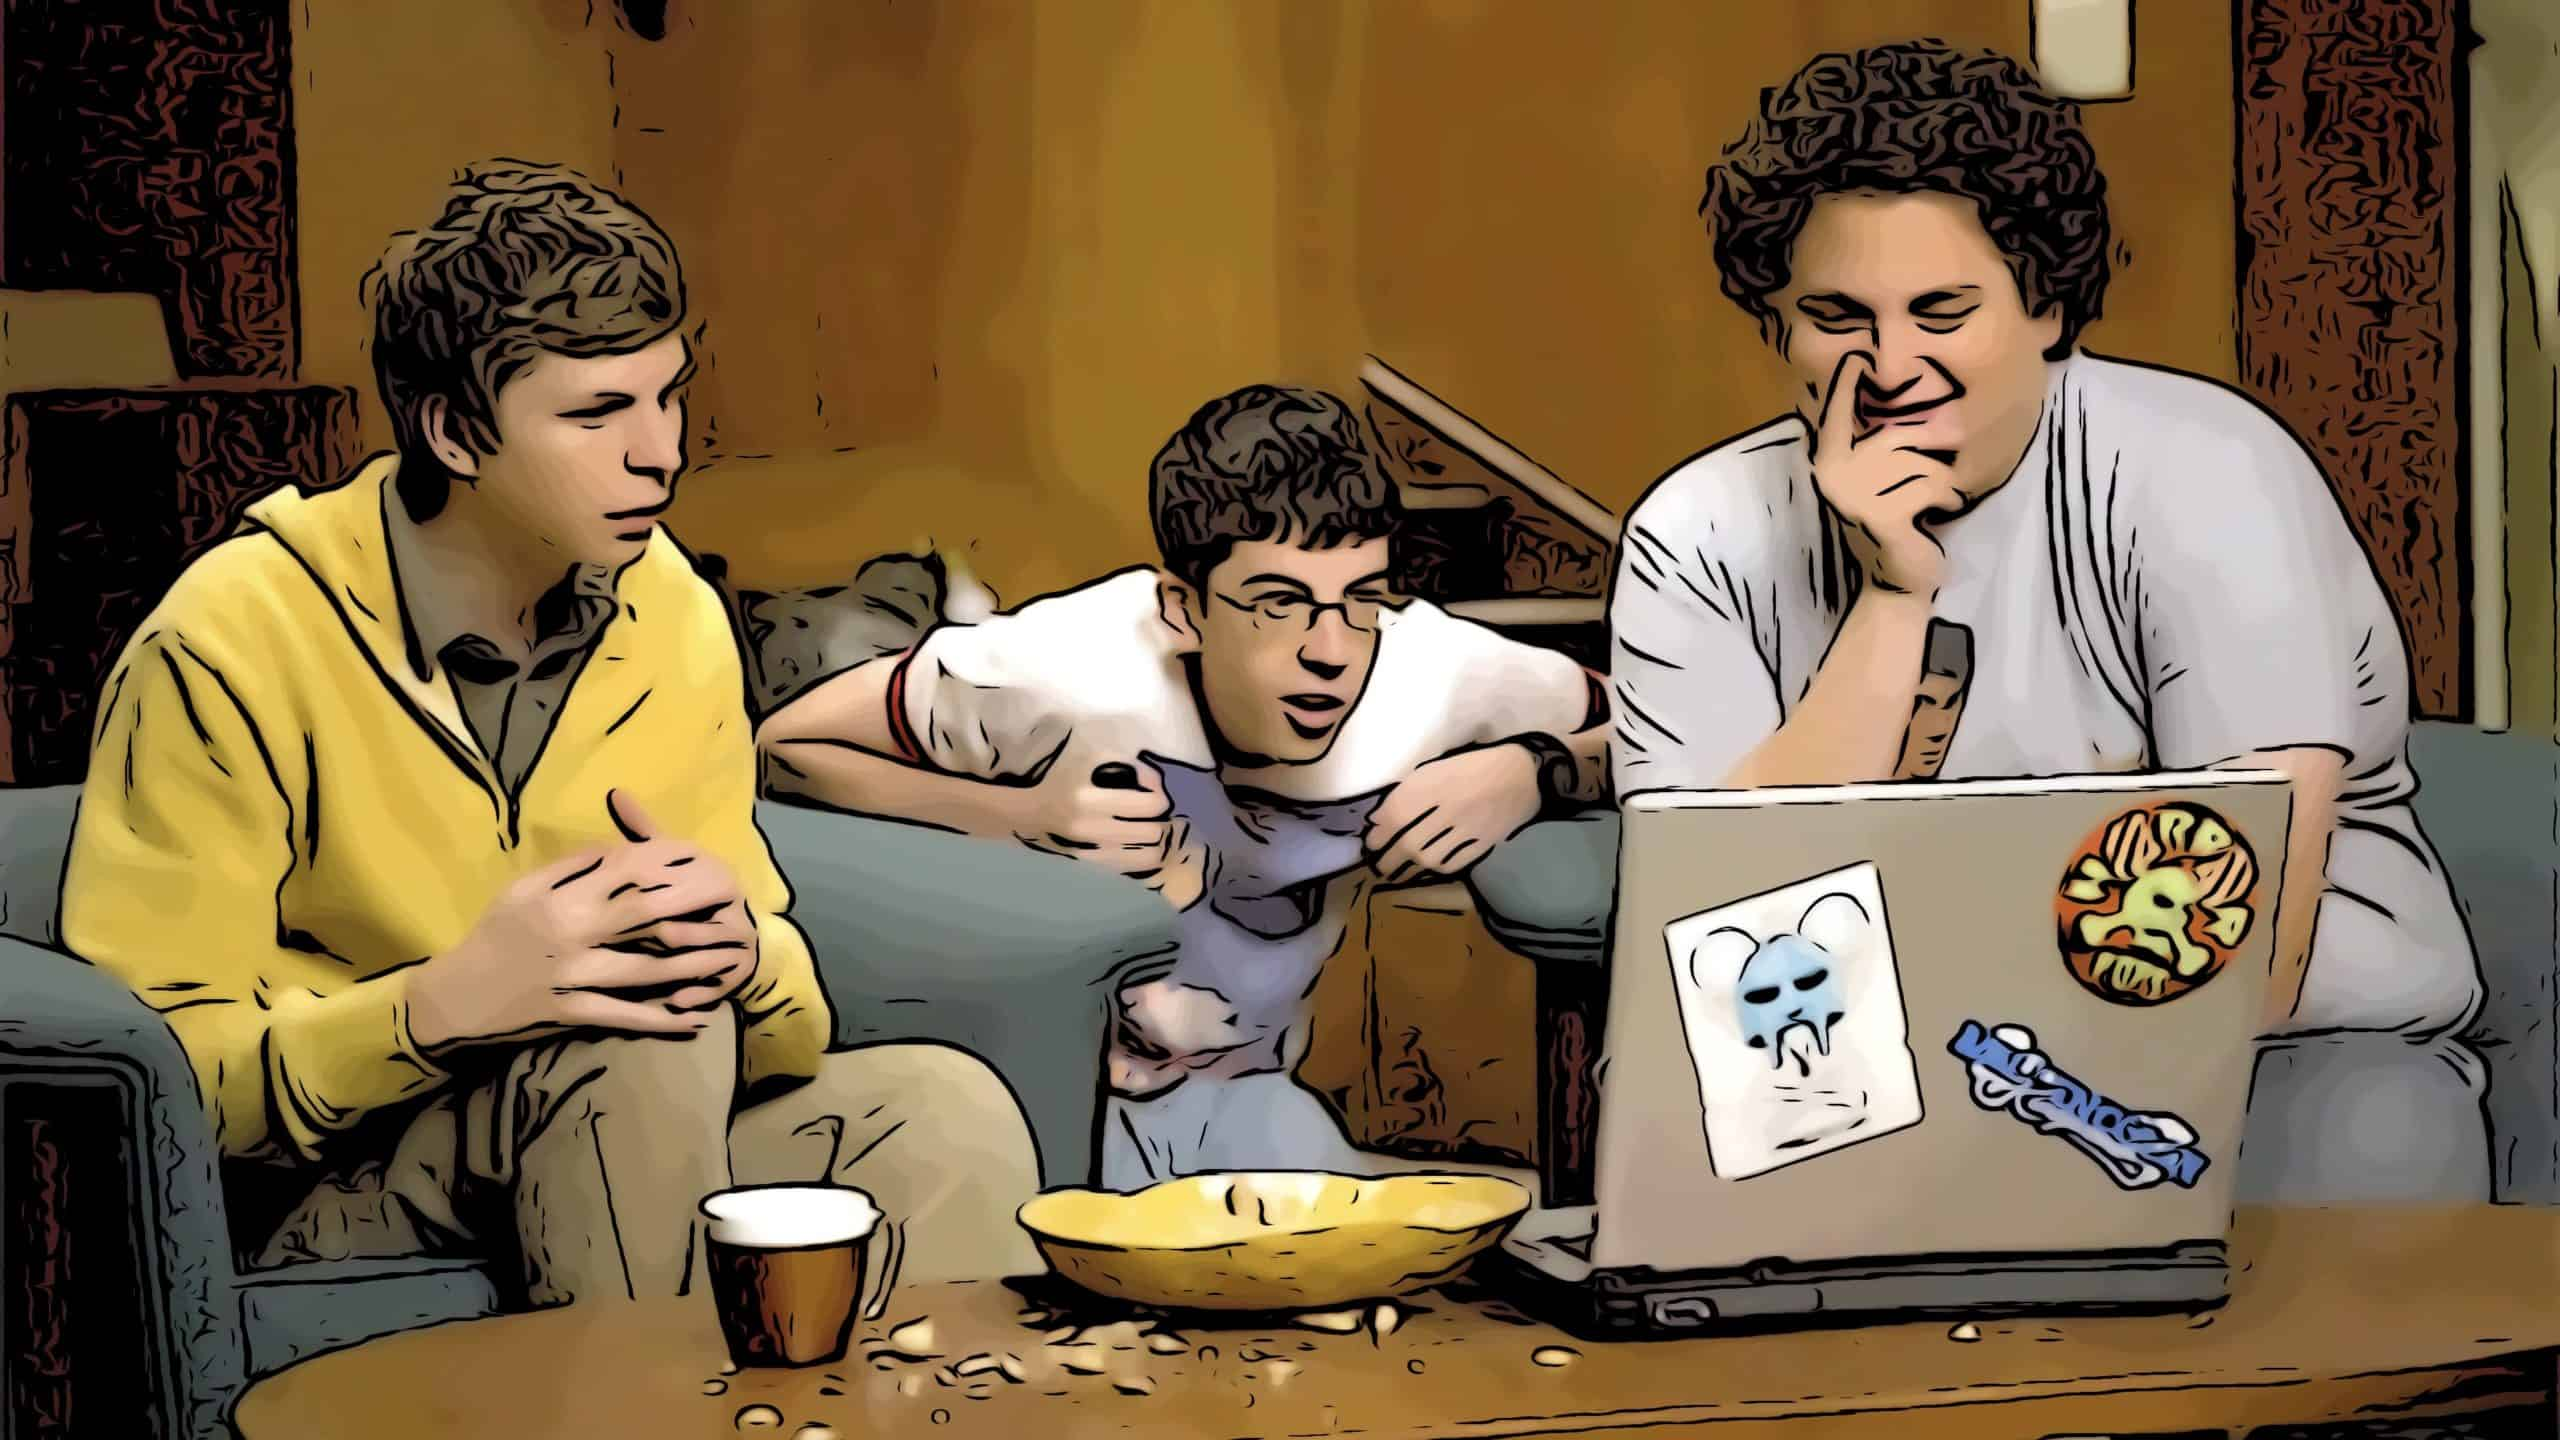 Scene from Superbad for movies like Good Boys post.